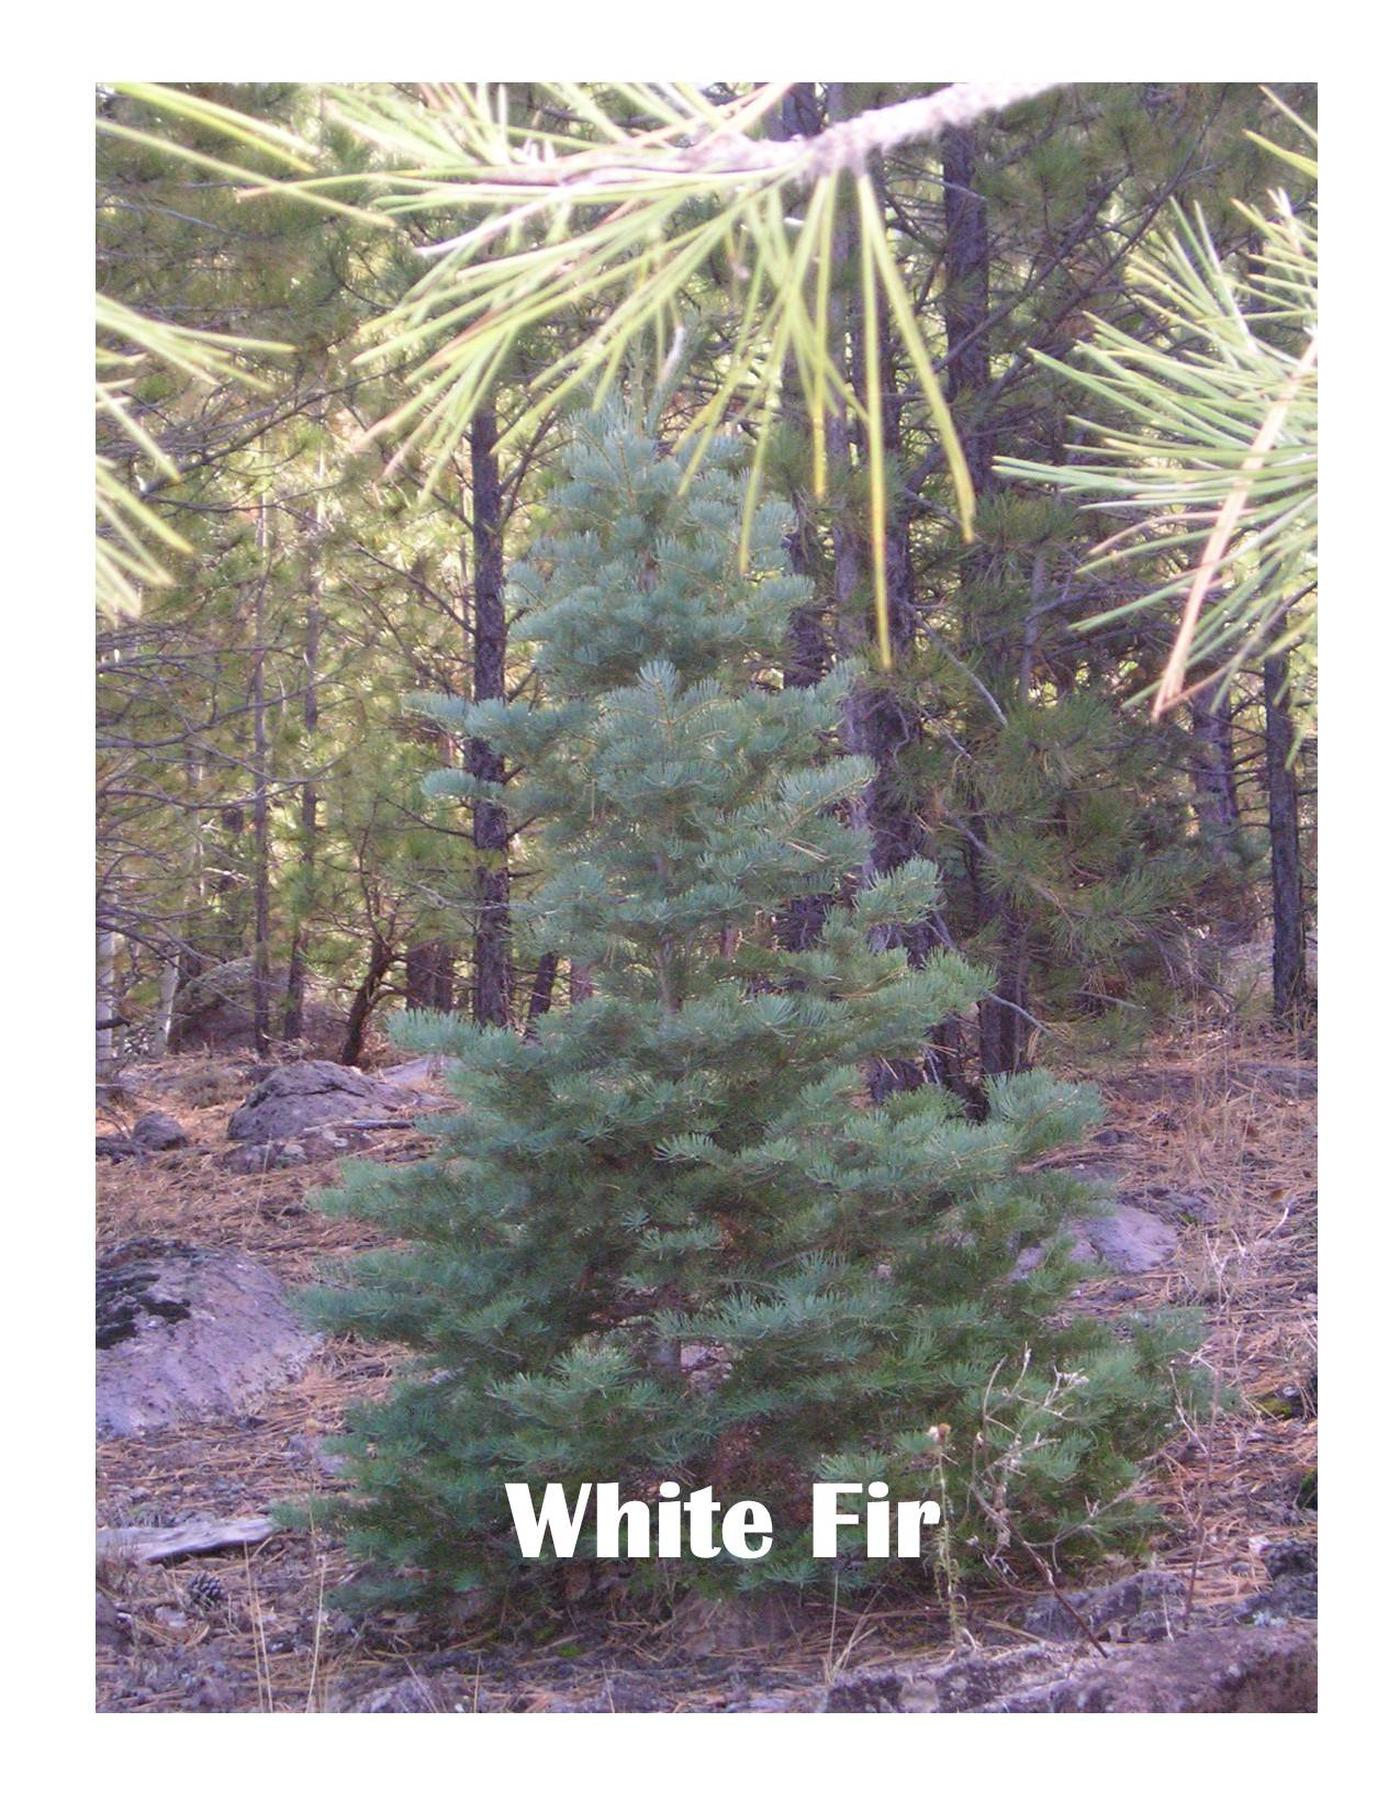 White Fir TreeVery common species for Christmas Trees.  Found on the Tonto NF.